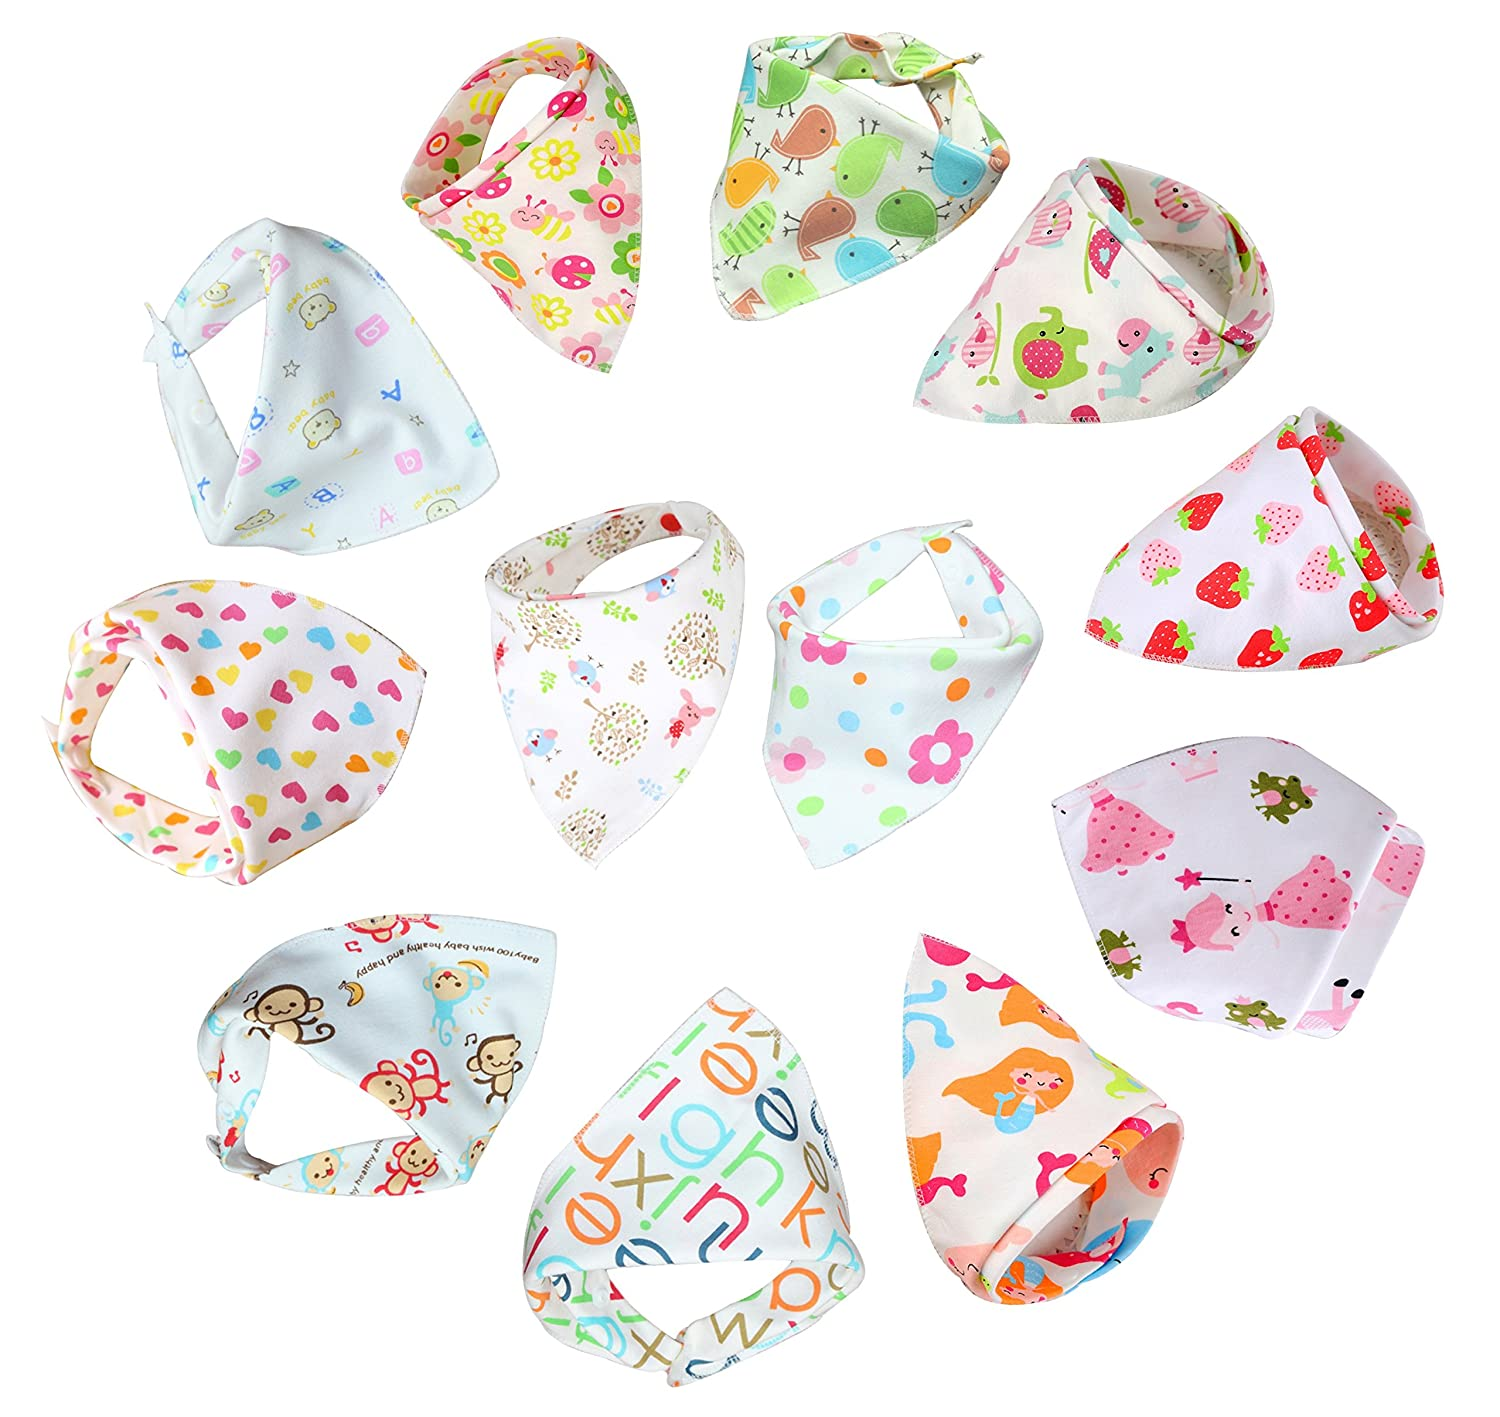 Bebedou 12 PACK Pink Girls bibs Super Absorbent Pure Cotton Stylish Bandana / Dribble Bib zoo unicorn design for Babies and Toddler